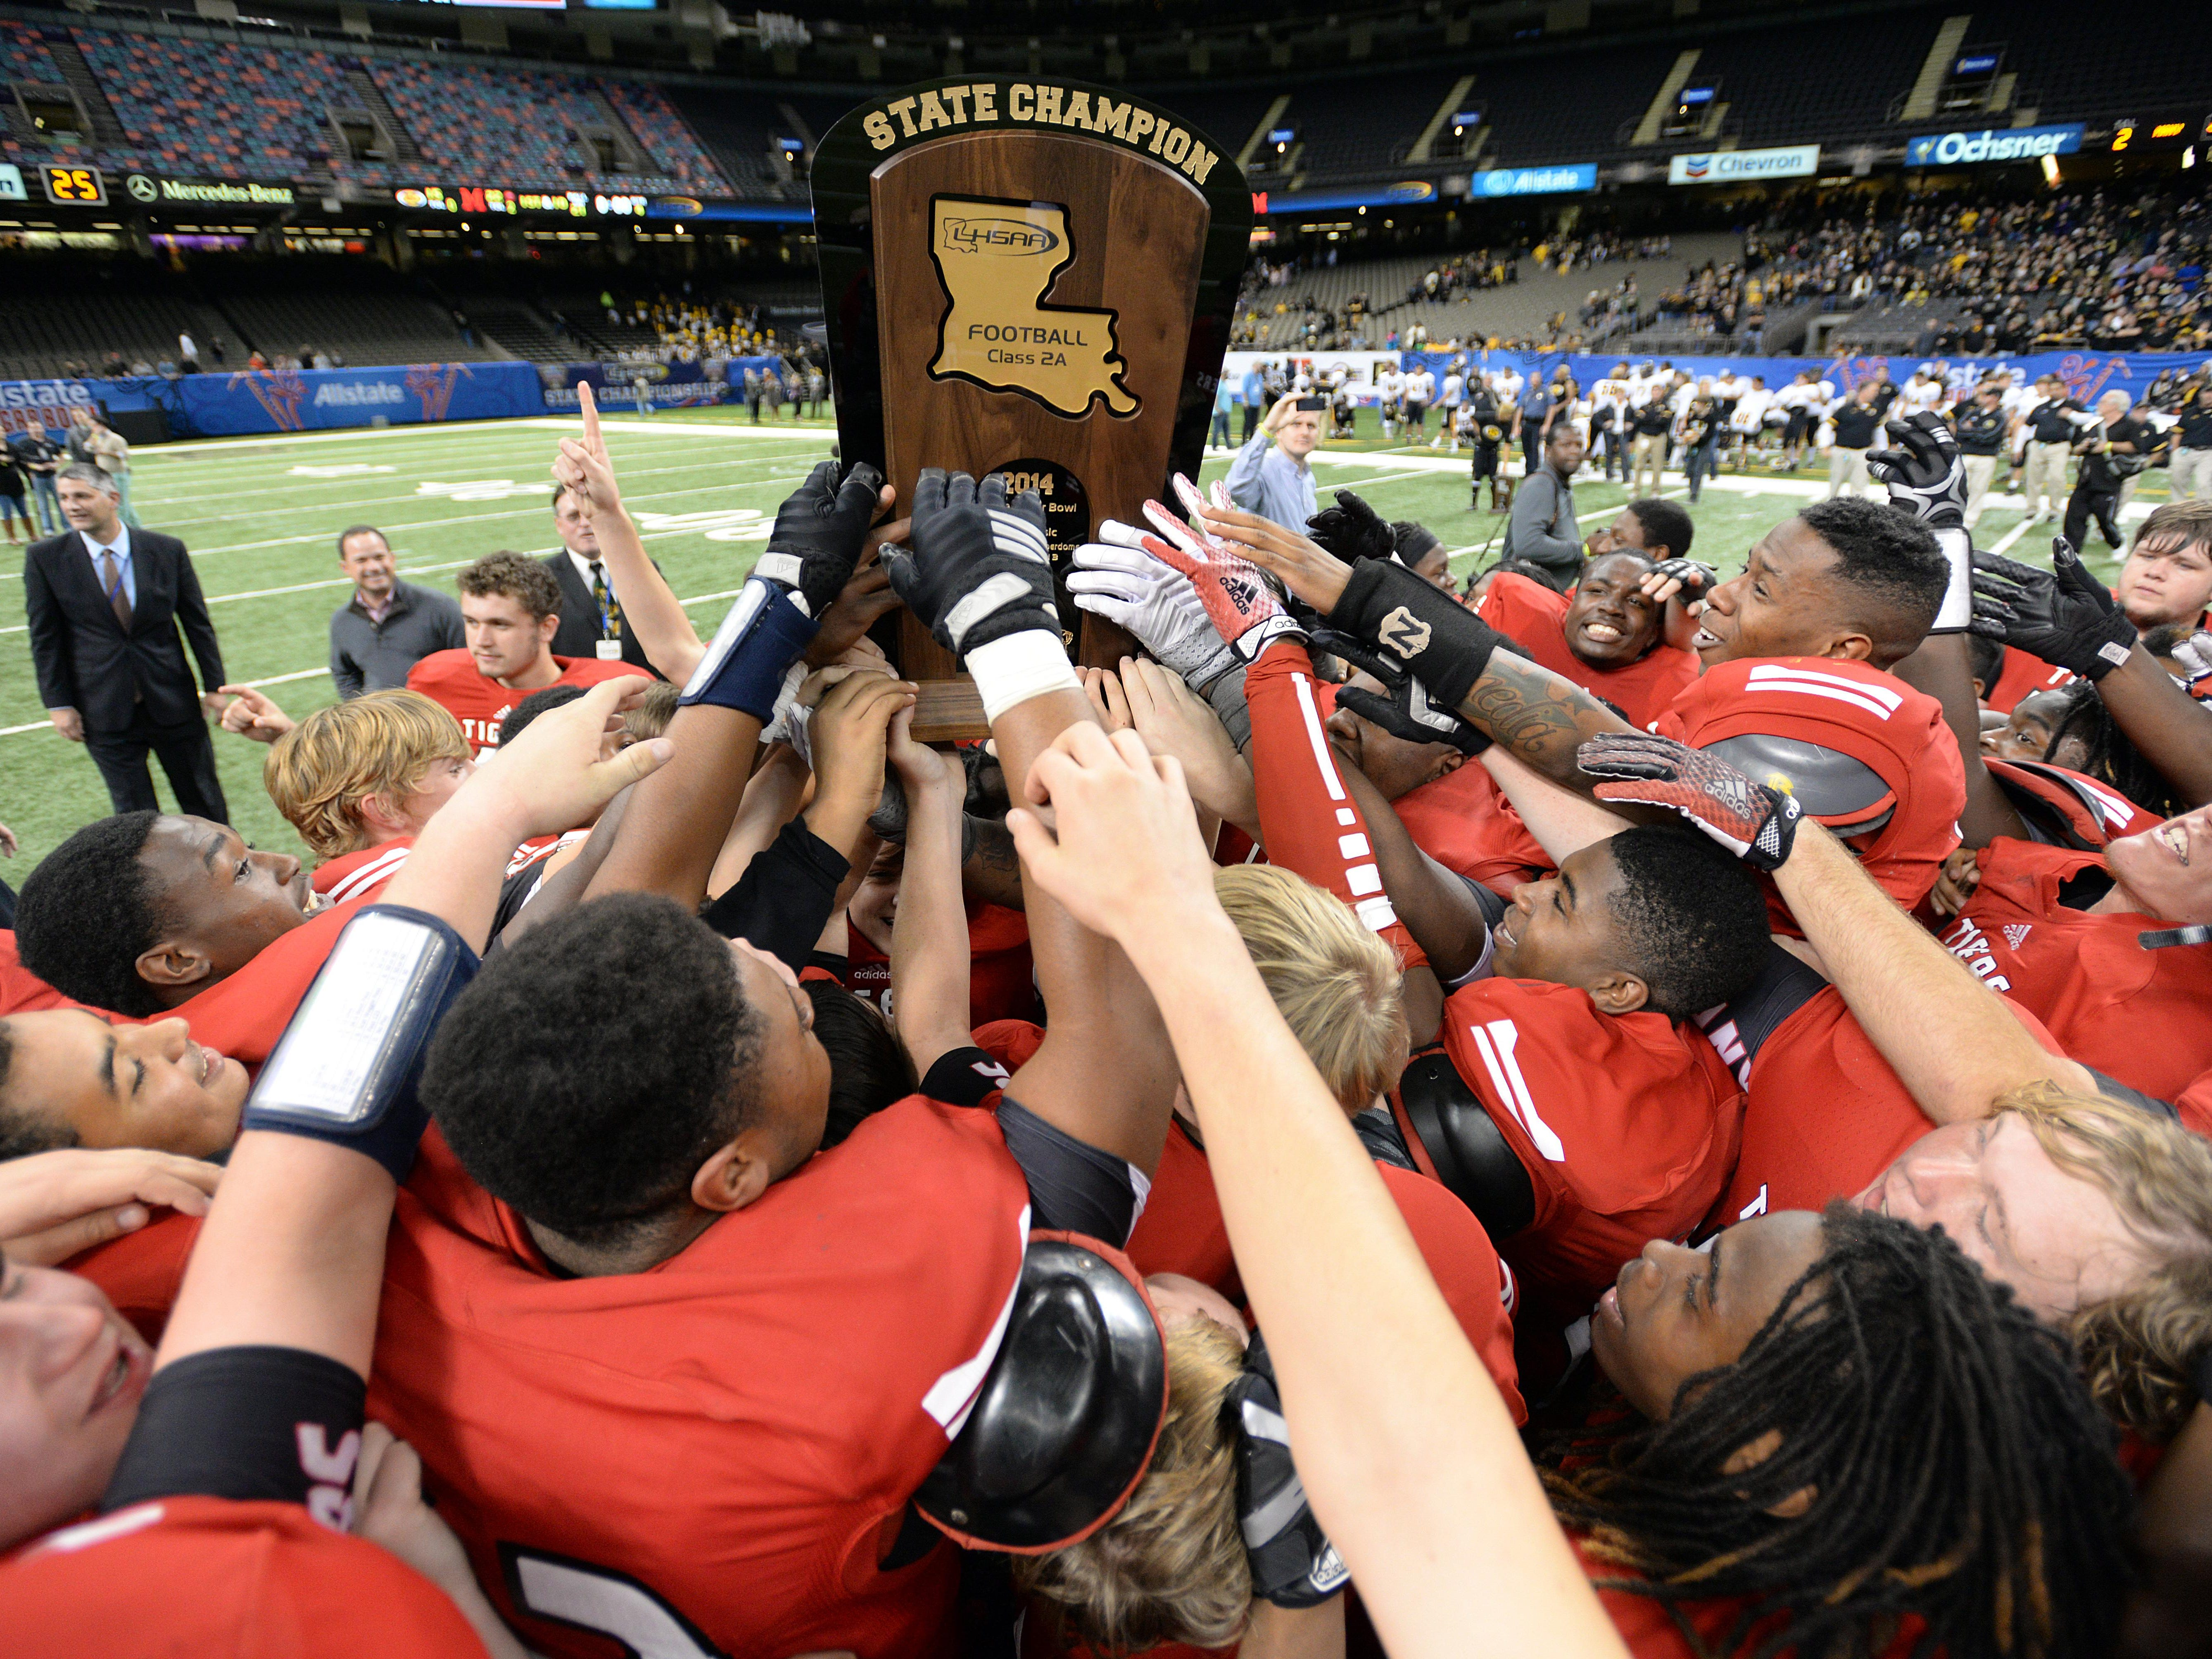 The Many Tigers celebrate after defeating the Kinder Yellow Jackets 22-15 in the 2014 LHSAA Class 2A championship game with Kinder in the Mercedes-Benz Superdome.